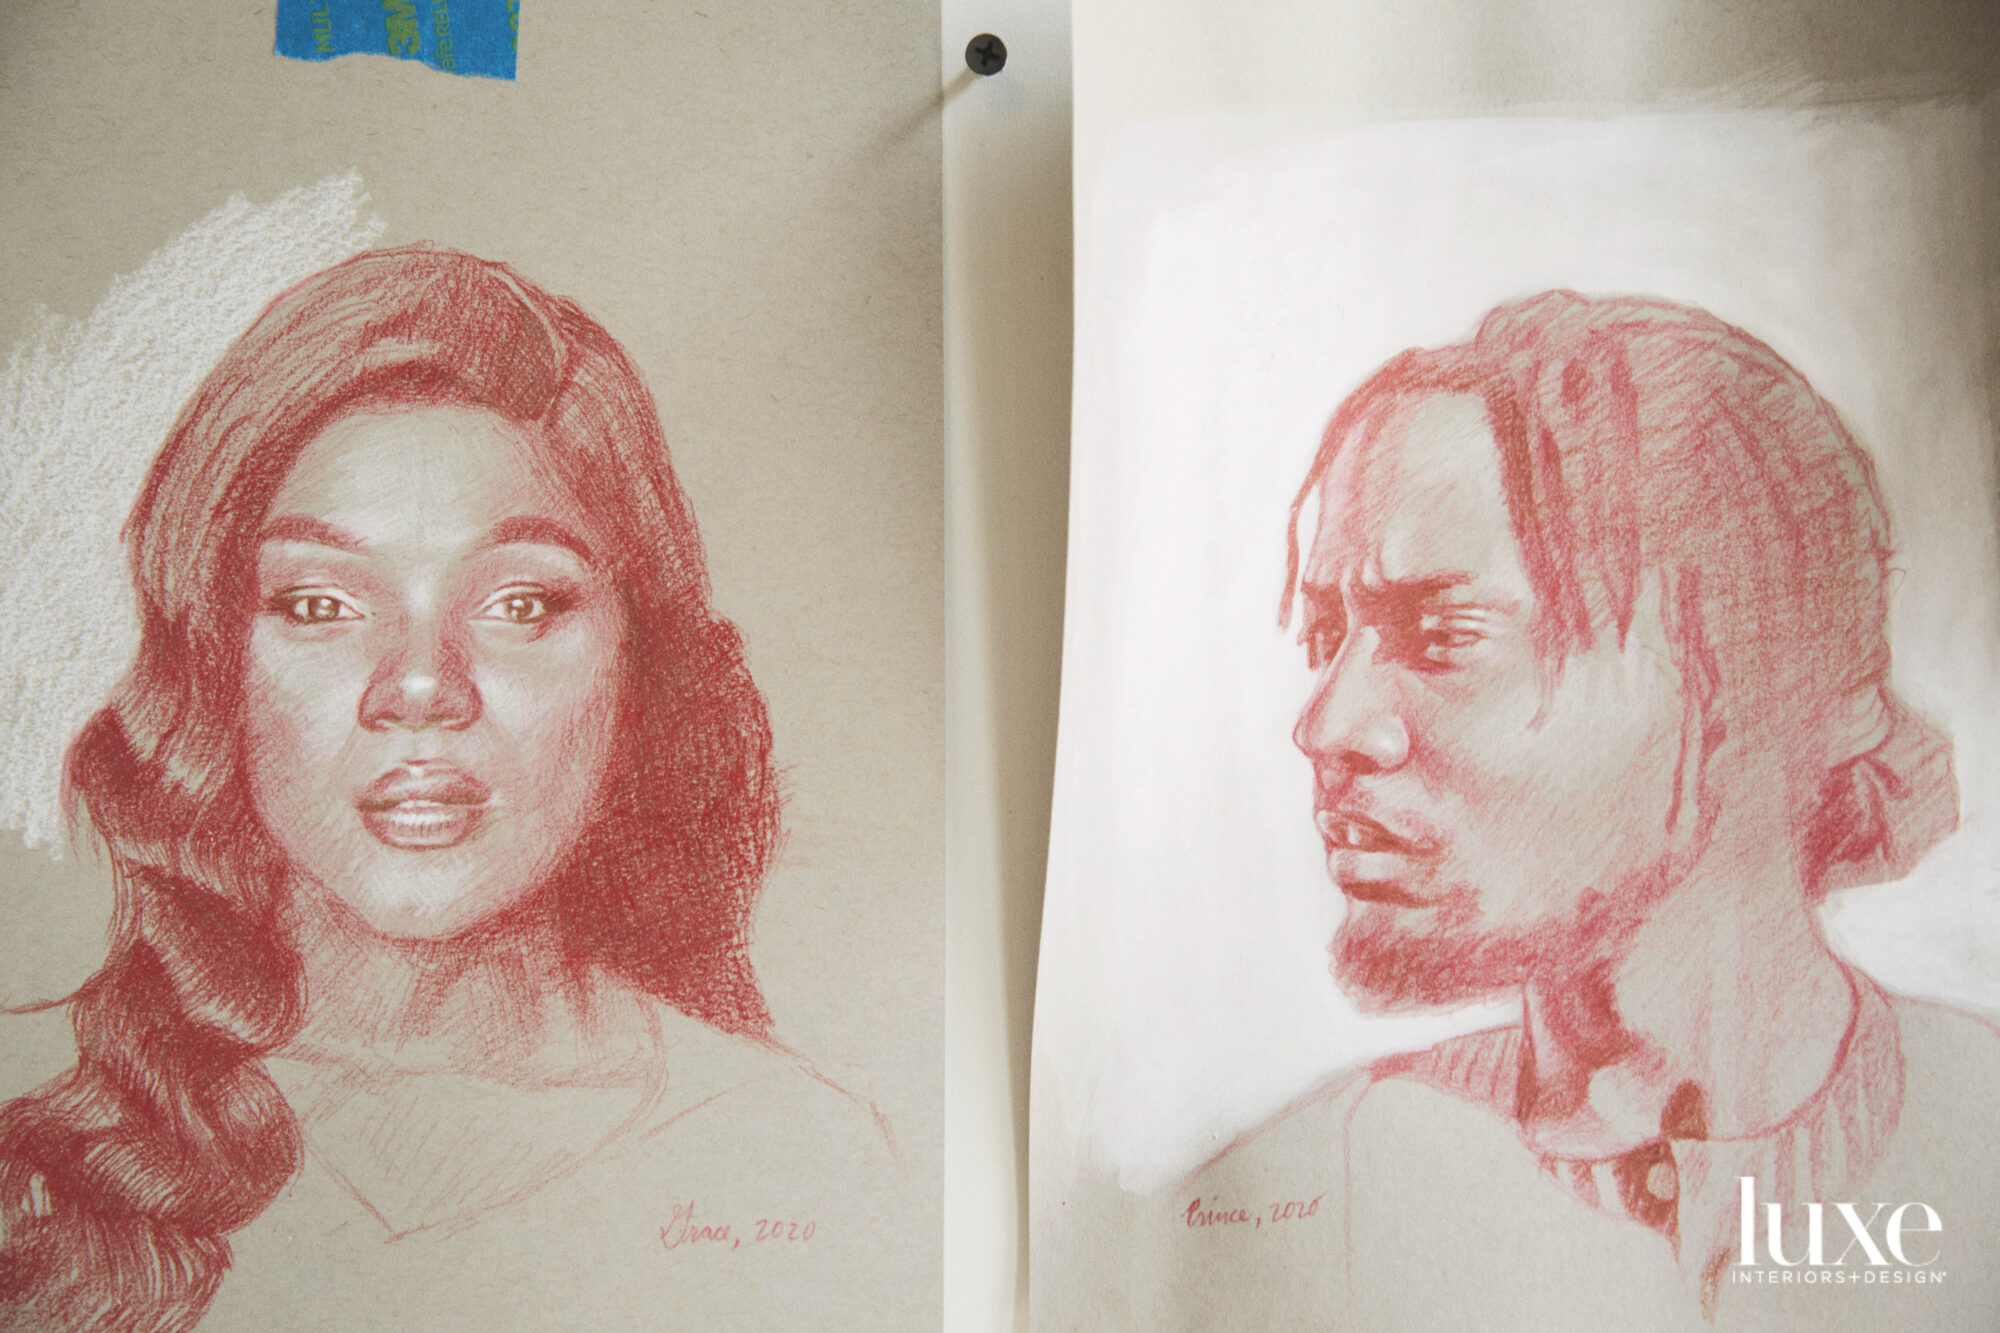 Two sketches; one of a Black woman and one of a Black man.